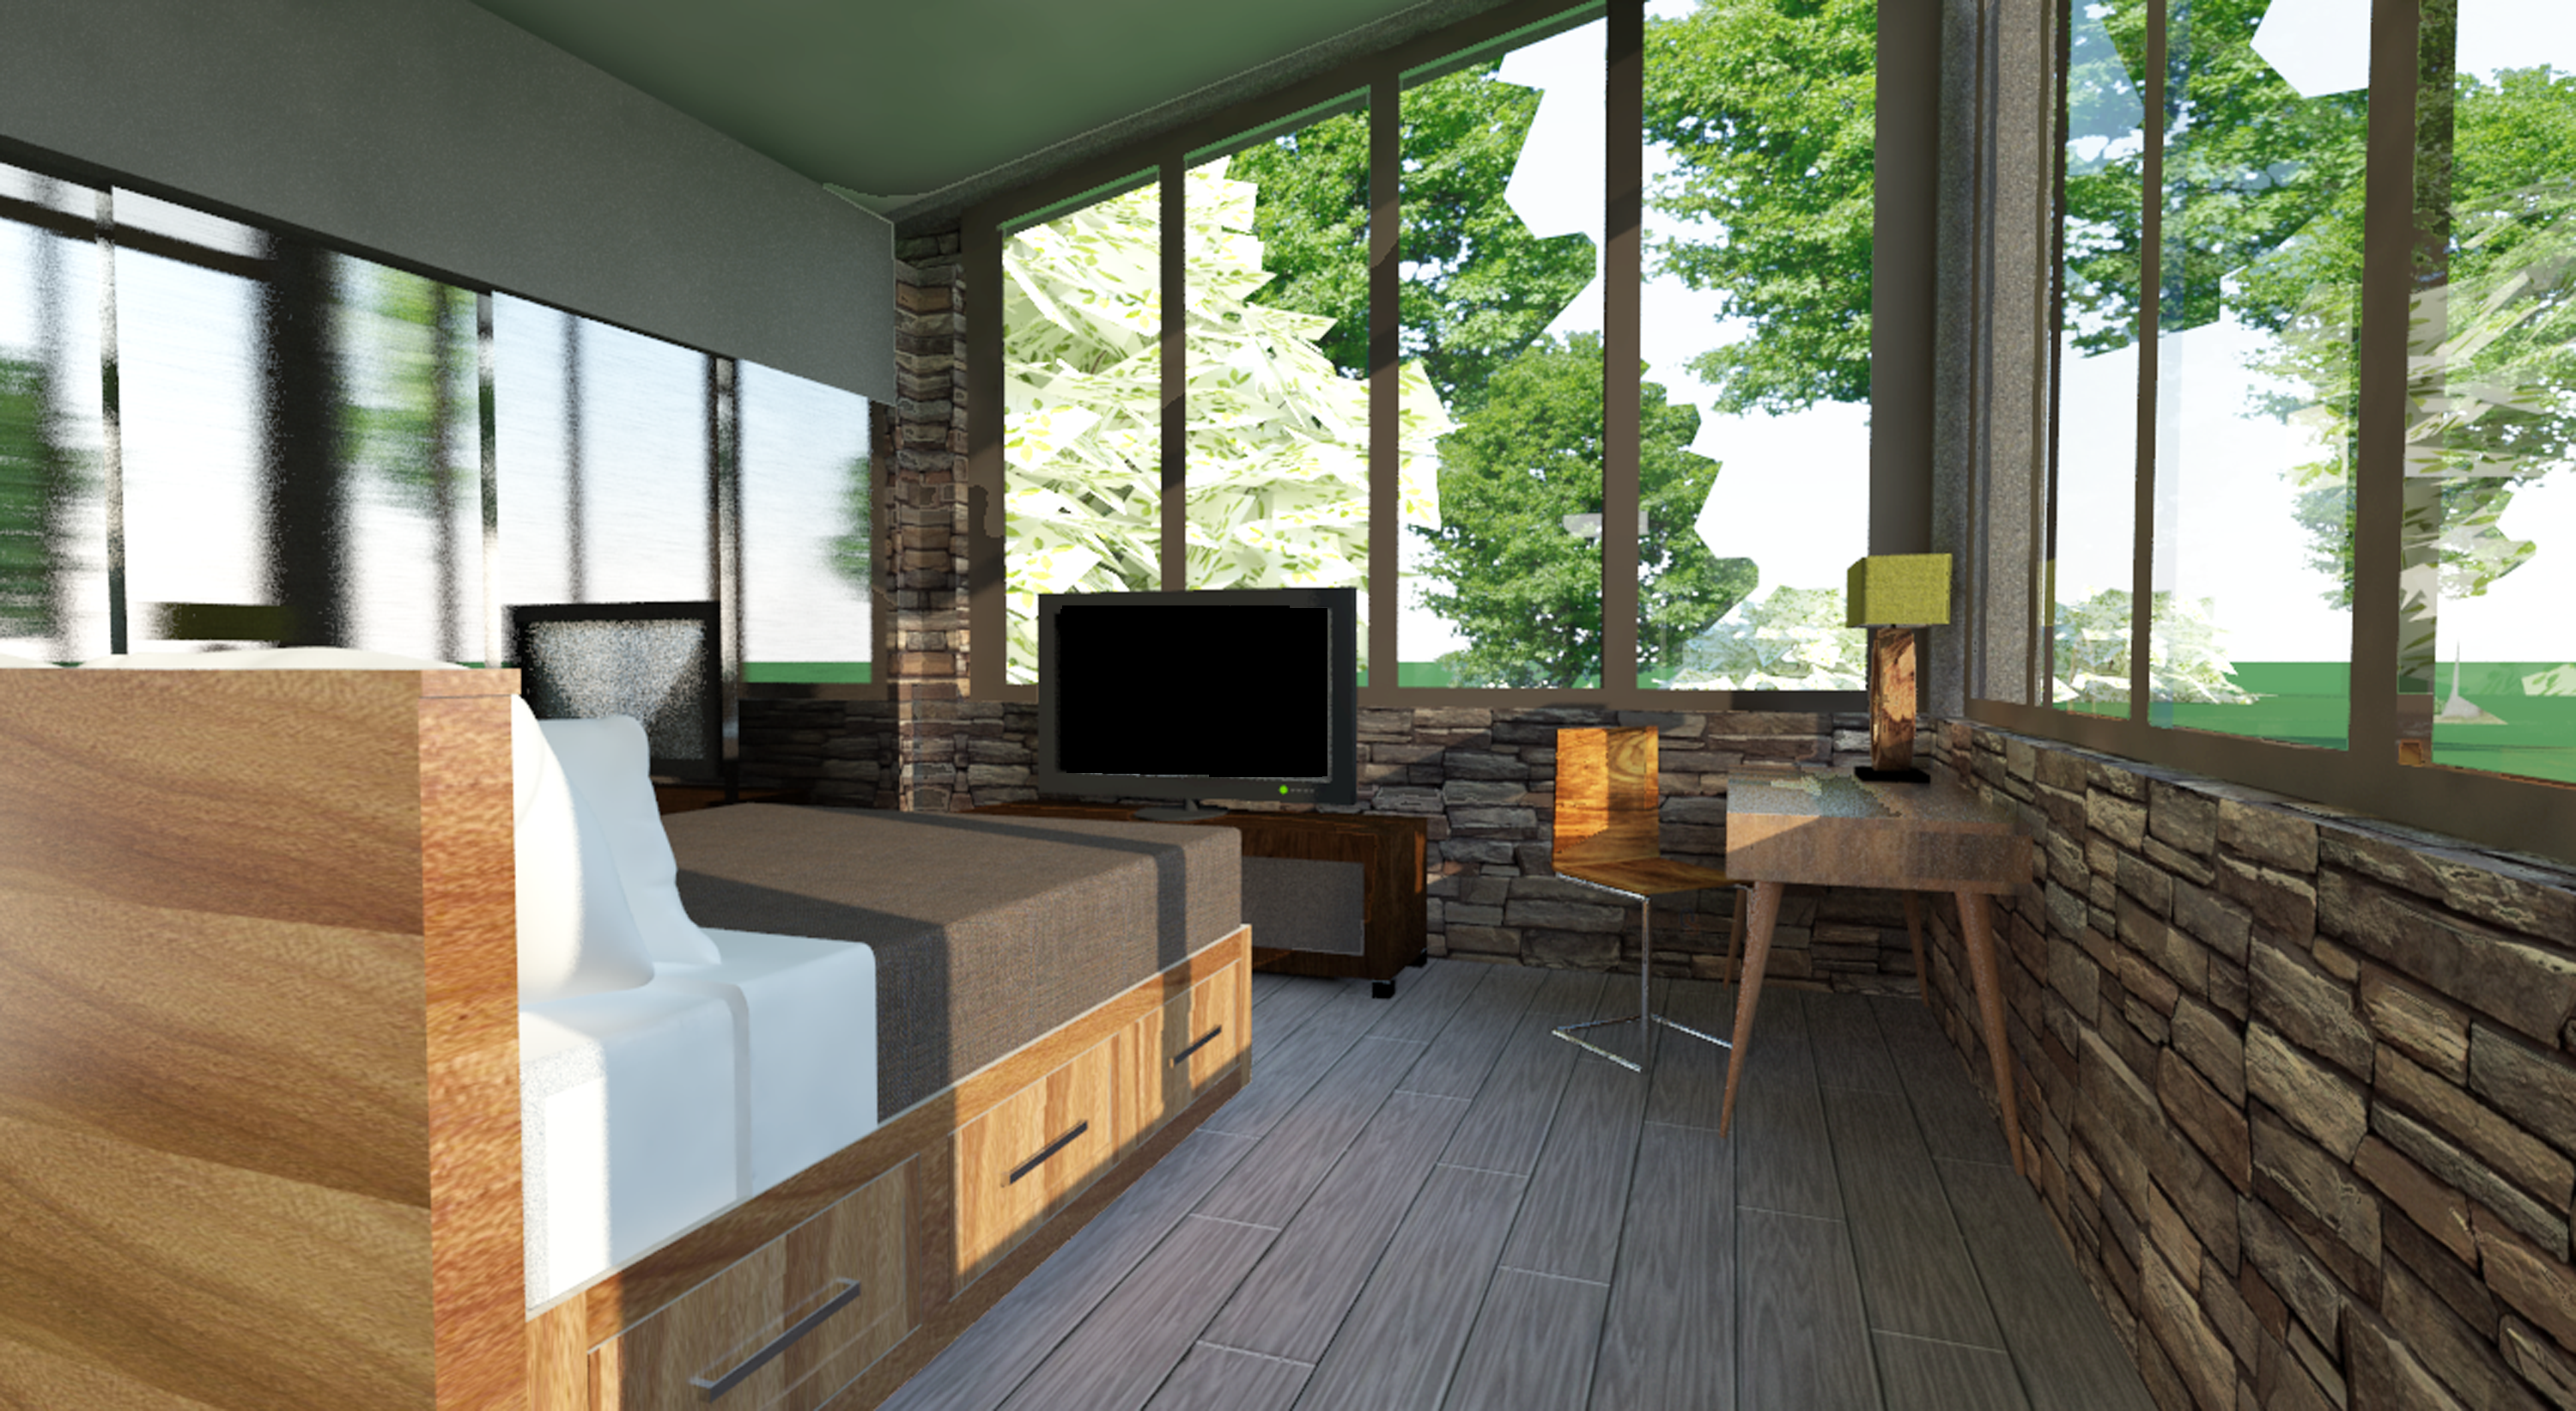 Tiny house project alternate view of bedroom rendered with vray 2 0 for